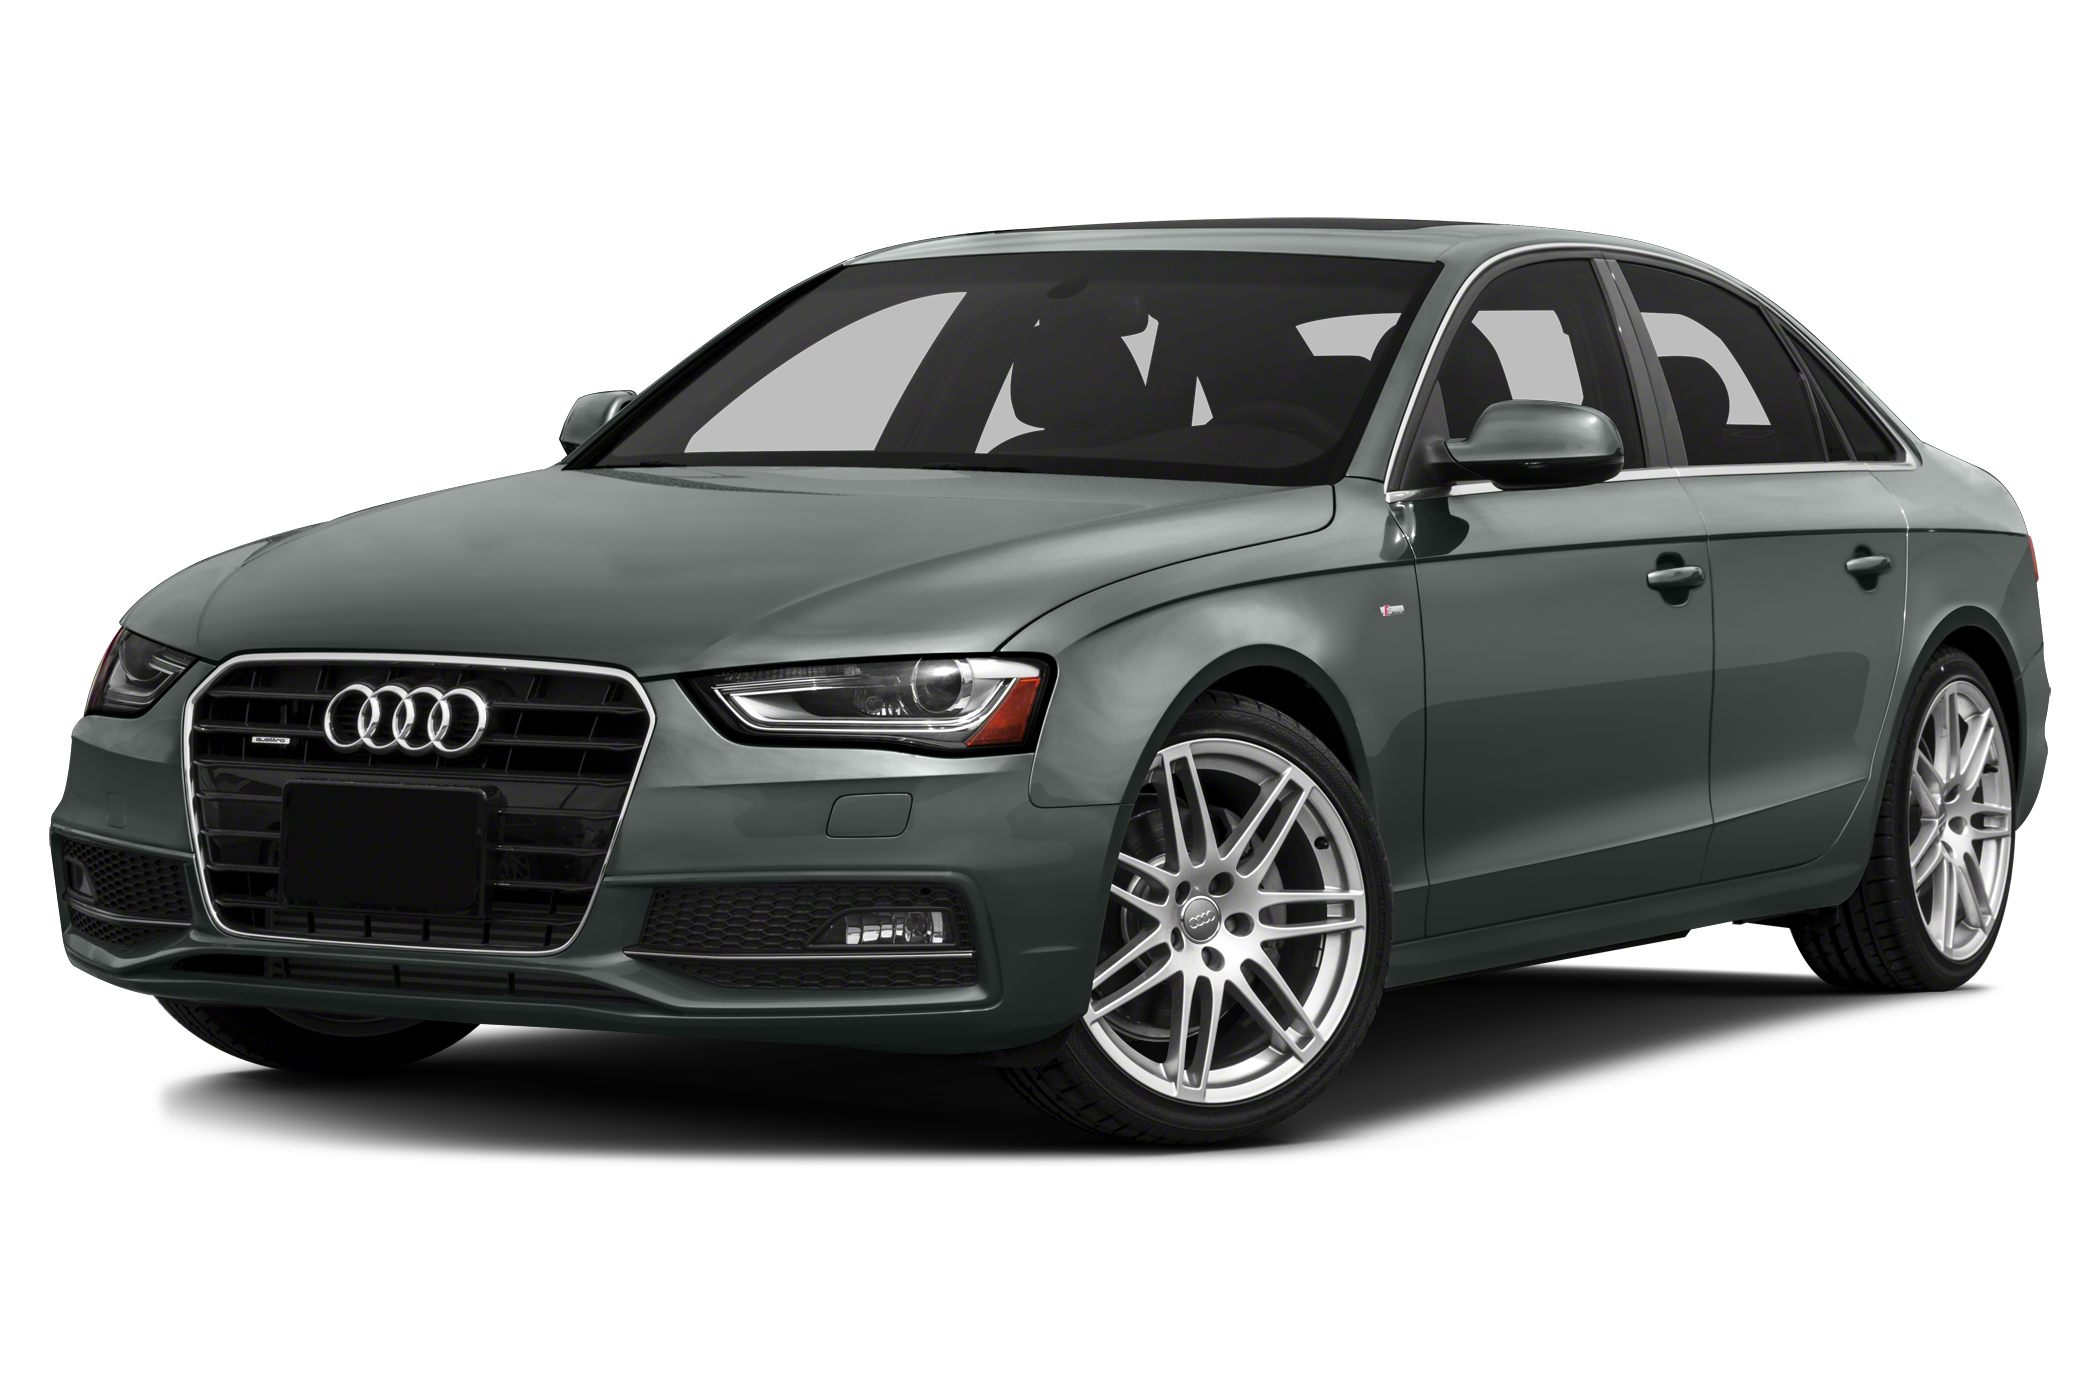 2014 Audi A4 2.0T Premium Sedan for sale in Pasadena for $33,975 with 3,152 miles